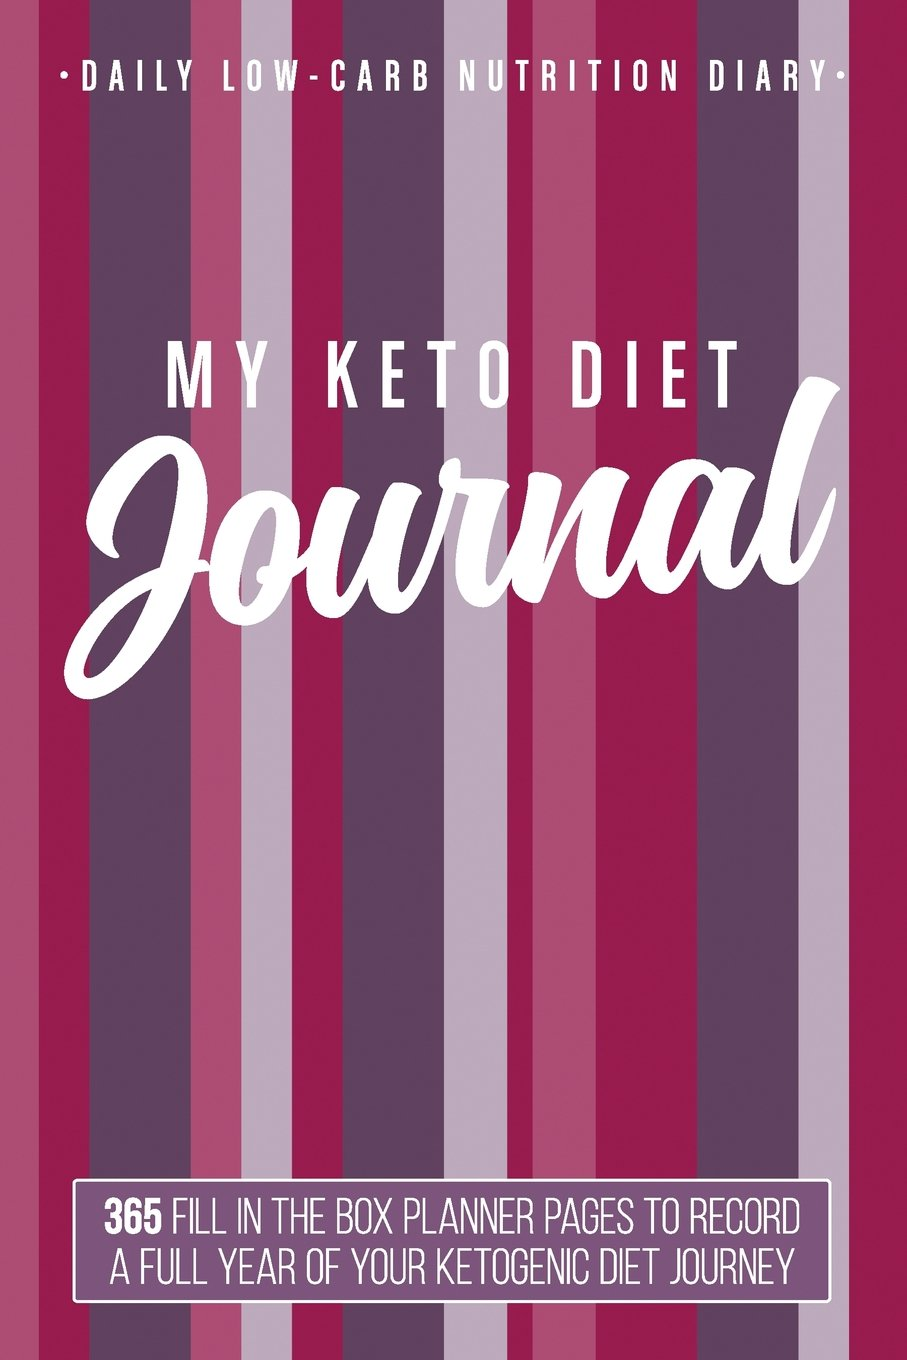 "My Keto Diet Journal: Daily Low-Carb Nutrition Diary 6"" x 9"": 365 Fill In The Box Planner Pages To Record A Full Year Of Your Ketogenic Diet Journey (Ketonius Books) ebook"